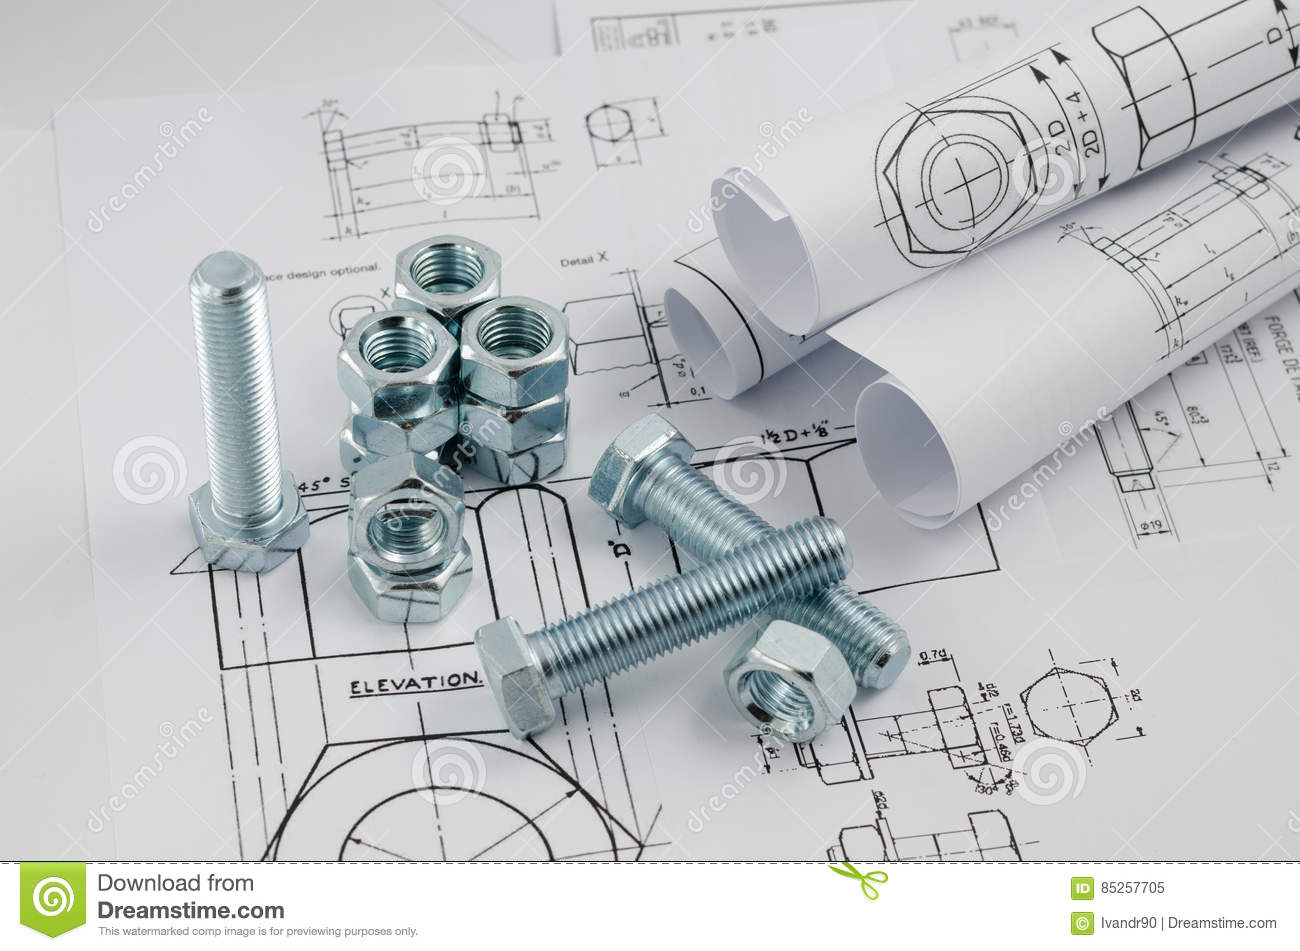 how to draw mechanical engineering drawings